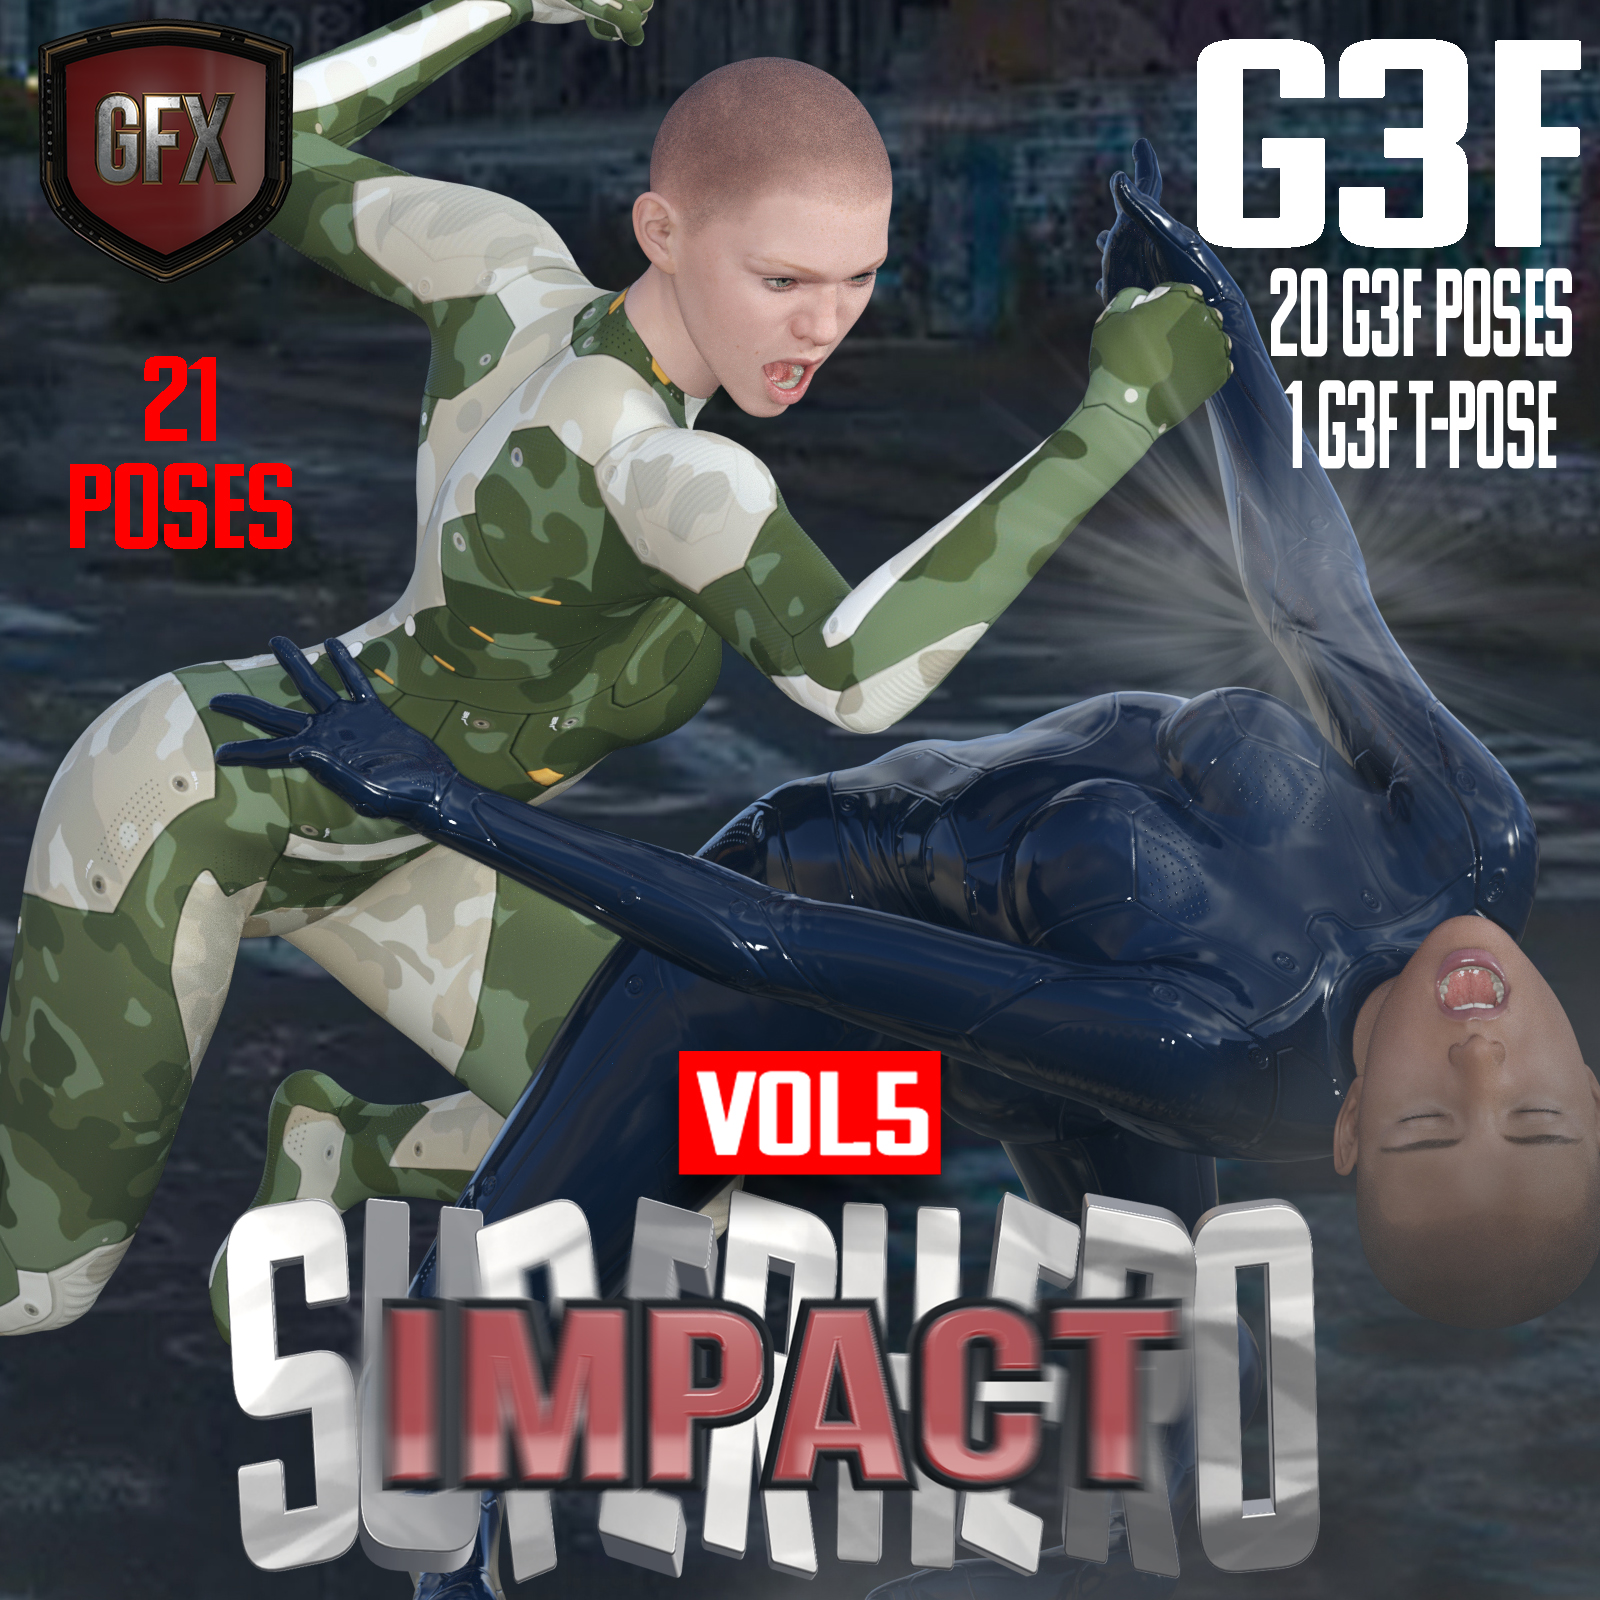 SuperHero Impact for G3F Volume 5 by GriffinFX